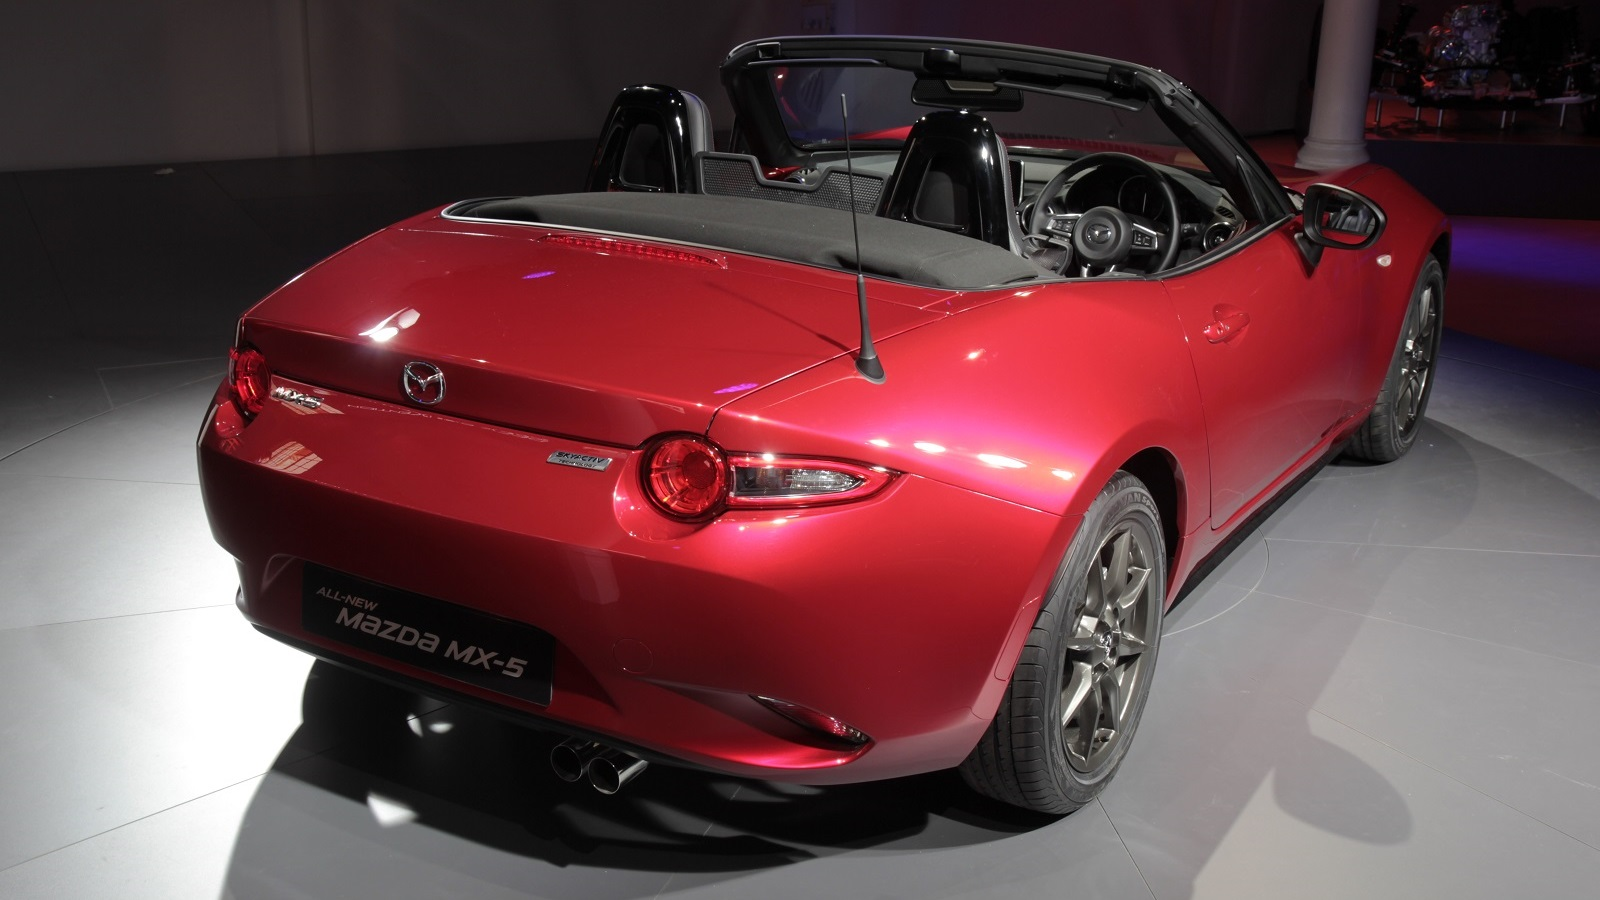 nouvelle mazda mx 5 caradisiac tait la pr sentation en premi re mondiale barcelone. Black Bedroom Furniture Sets. Home Design Ideas